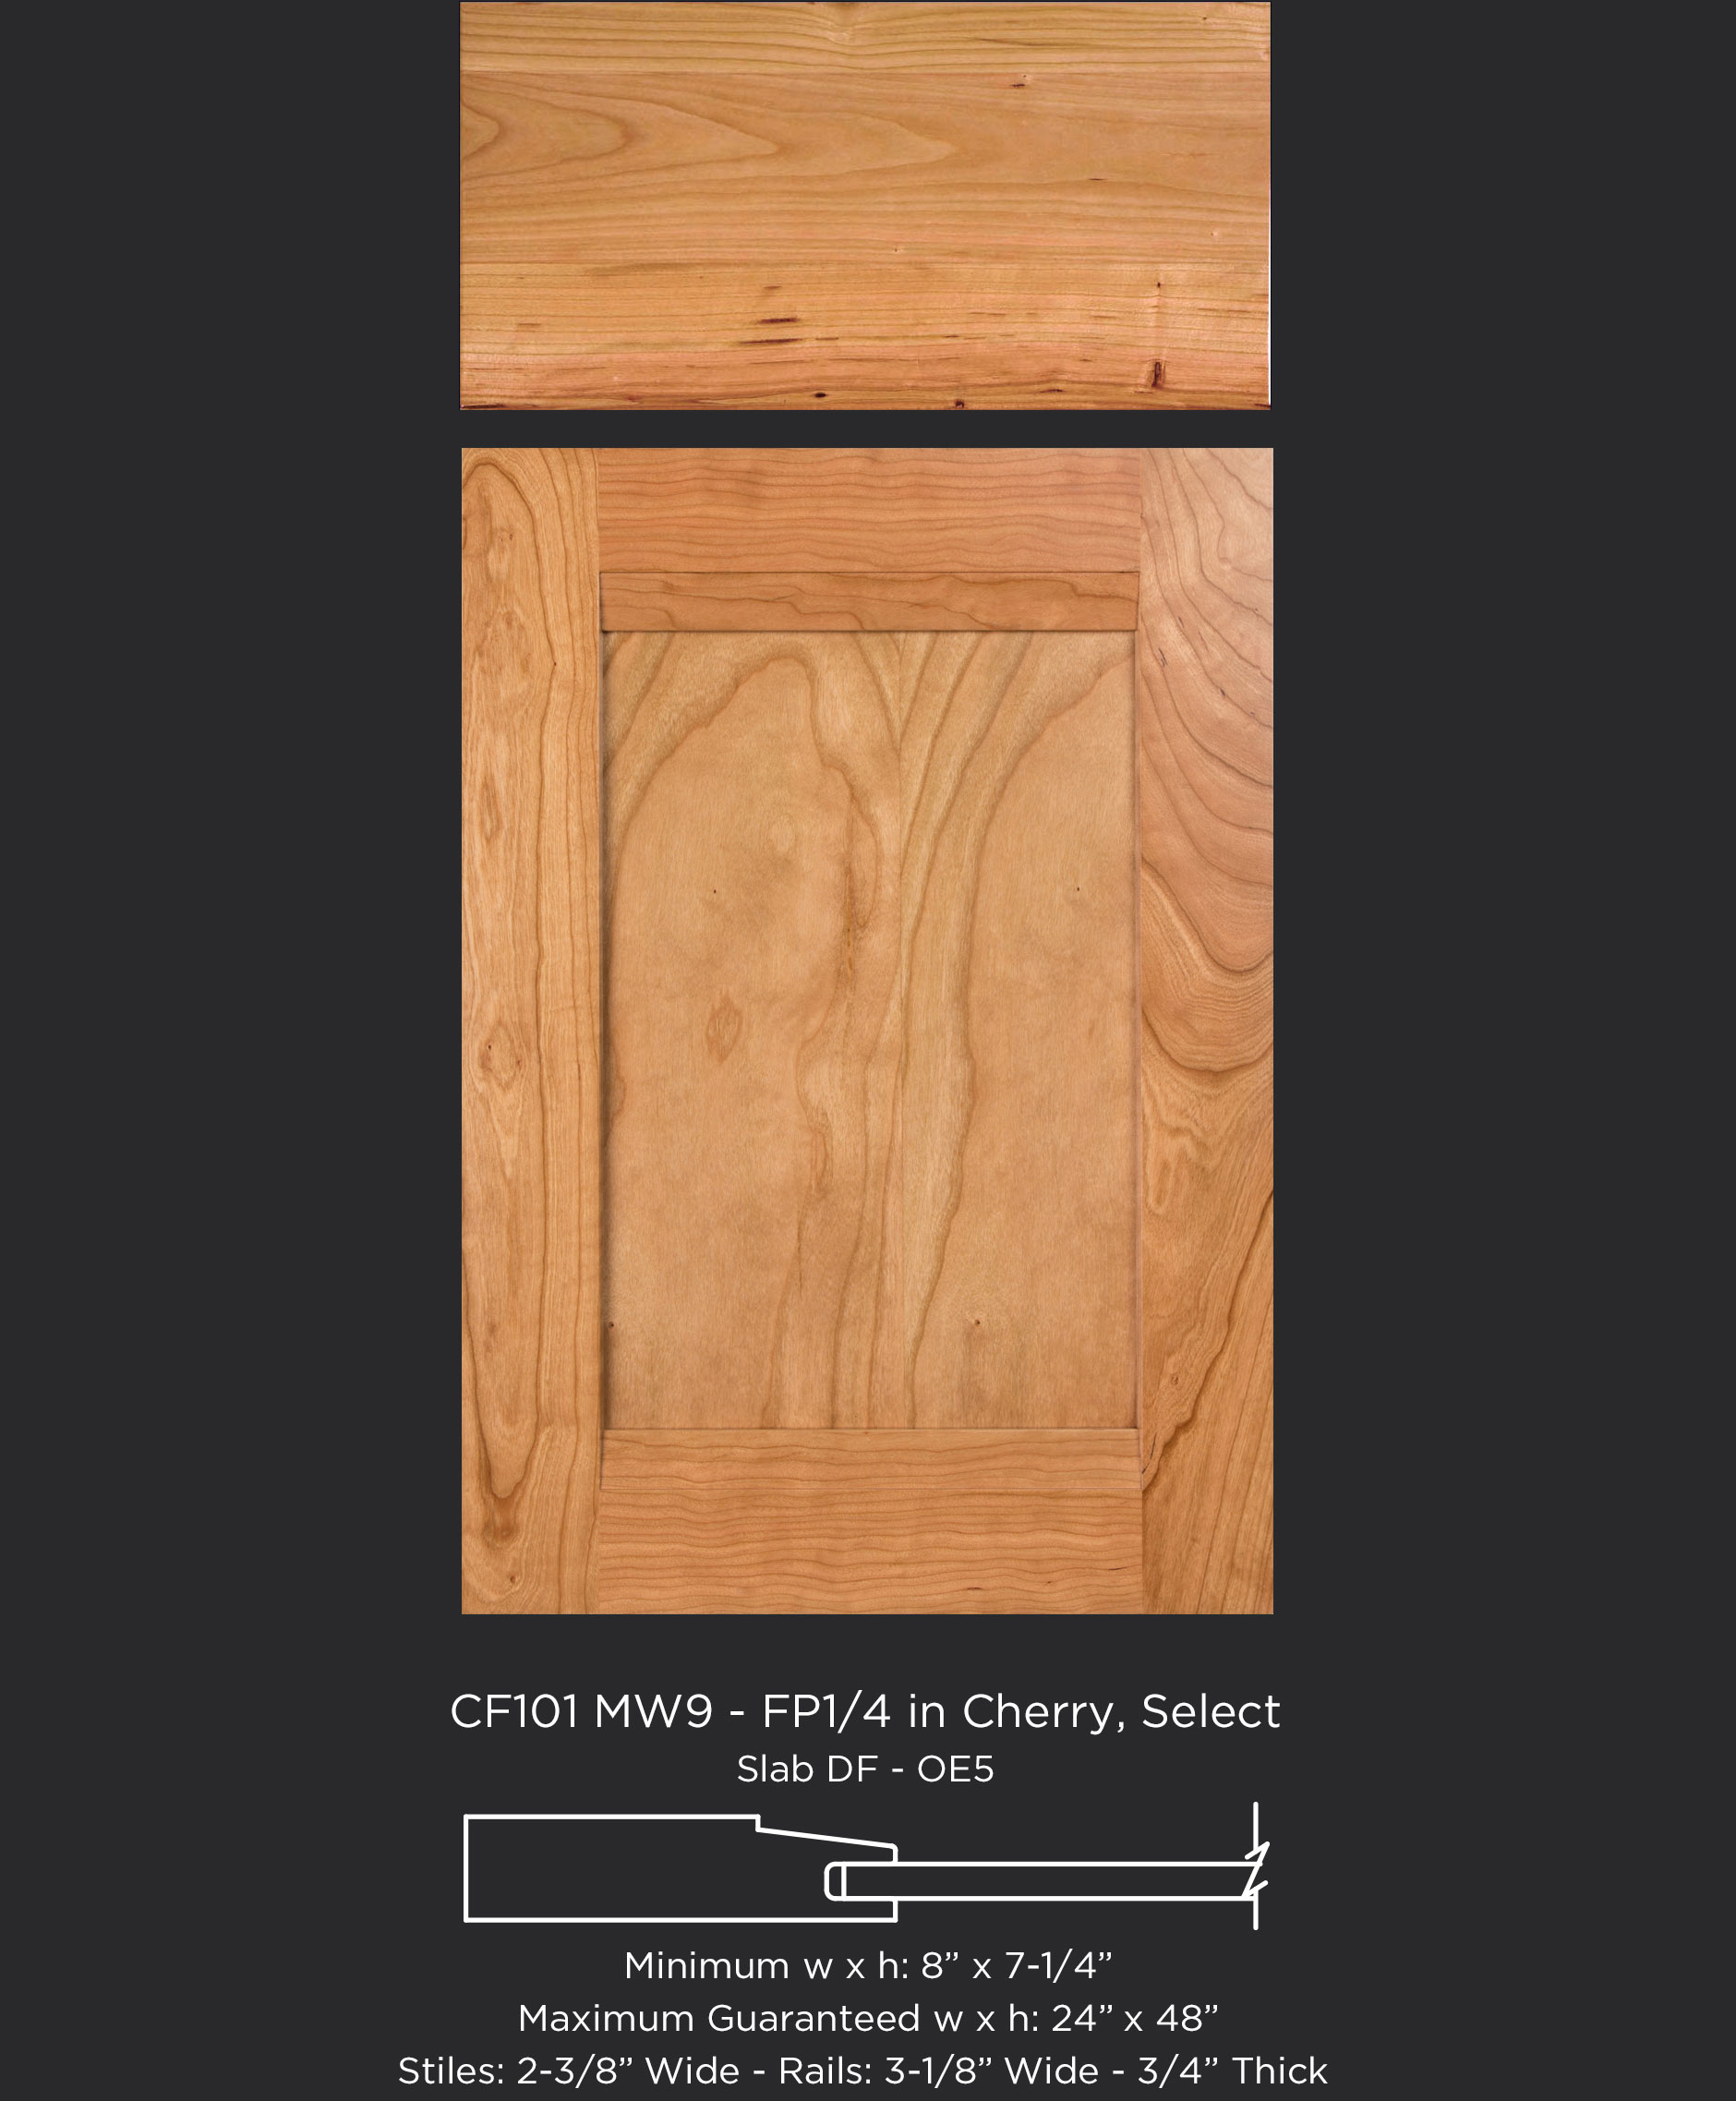 Combination Frame Cabinet Door CF101 MW9-FP1/4 in Cherry, Select with slab drawer front